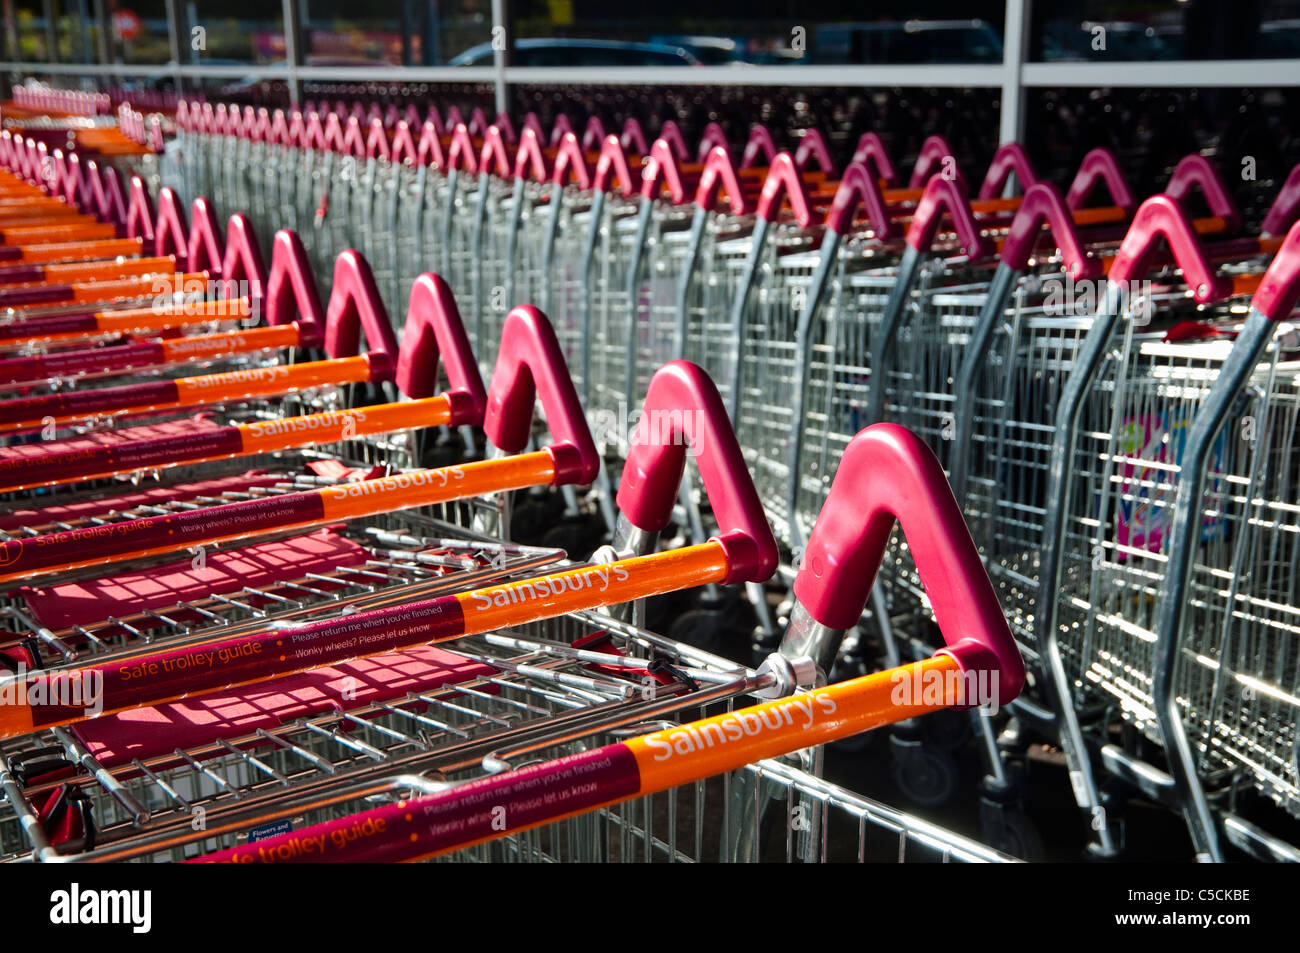 Rows / lines of Sainsbury's shopping trolleys. UK - Stock Image